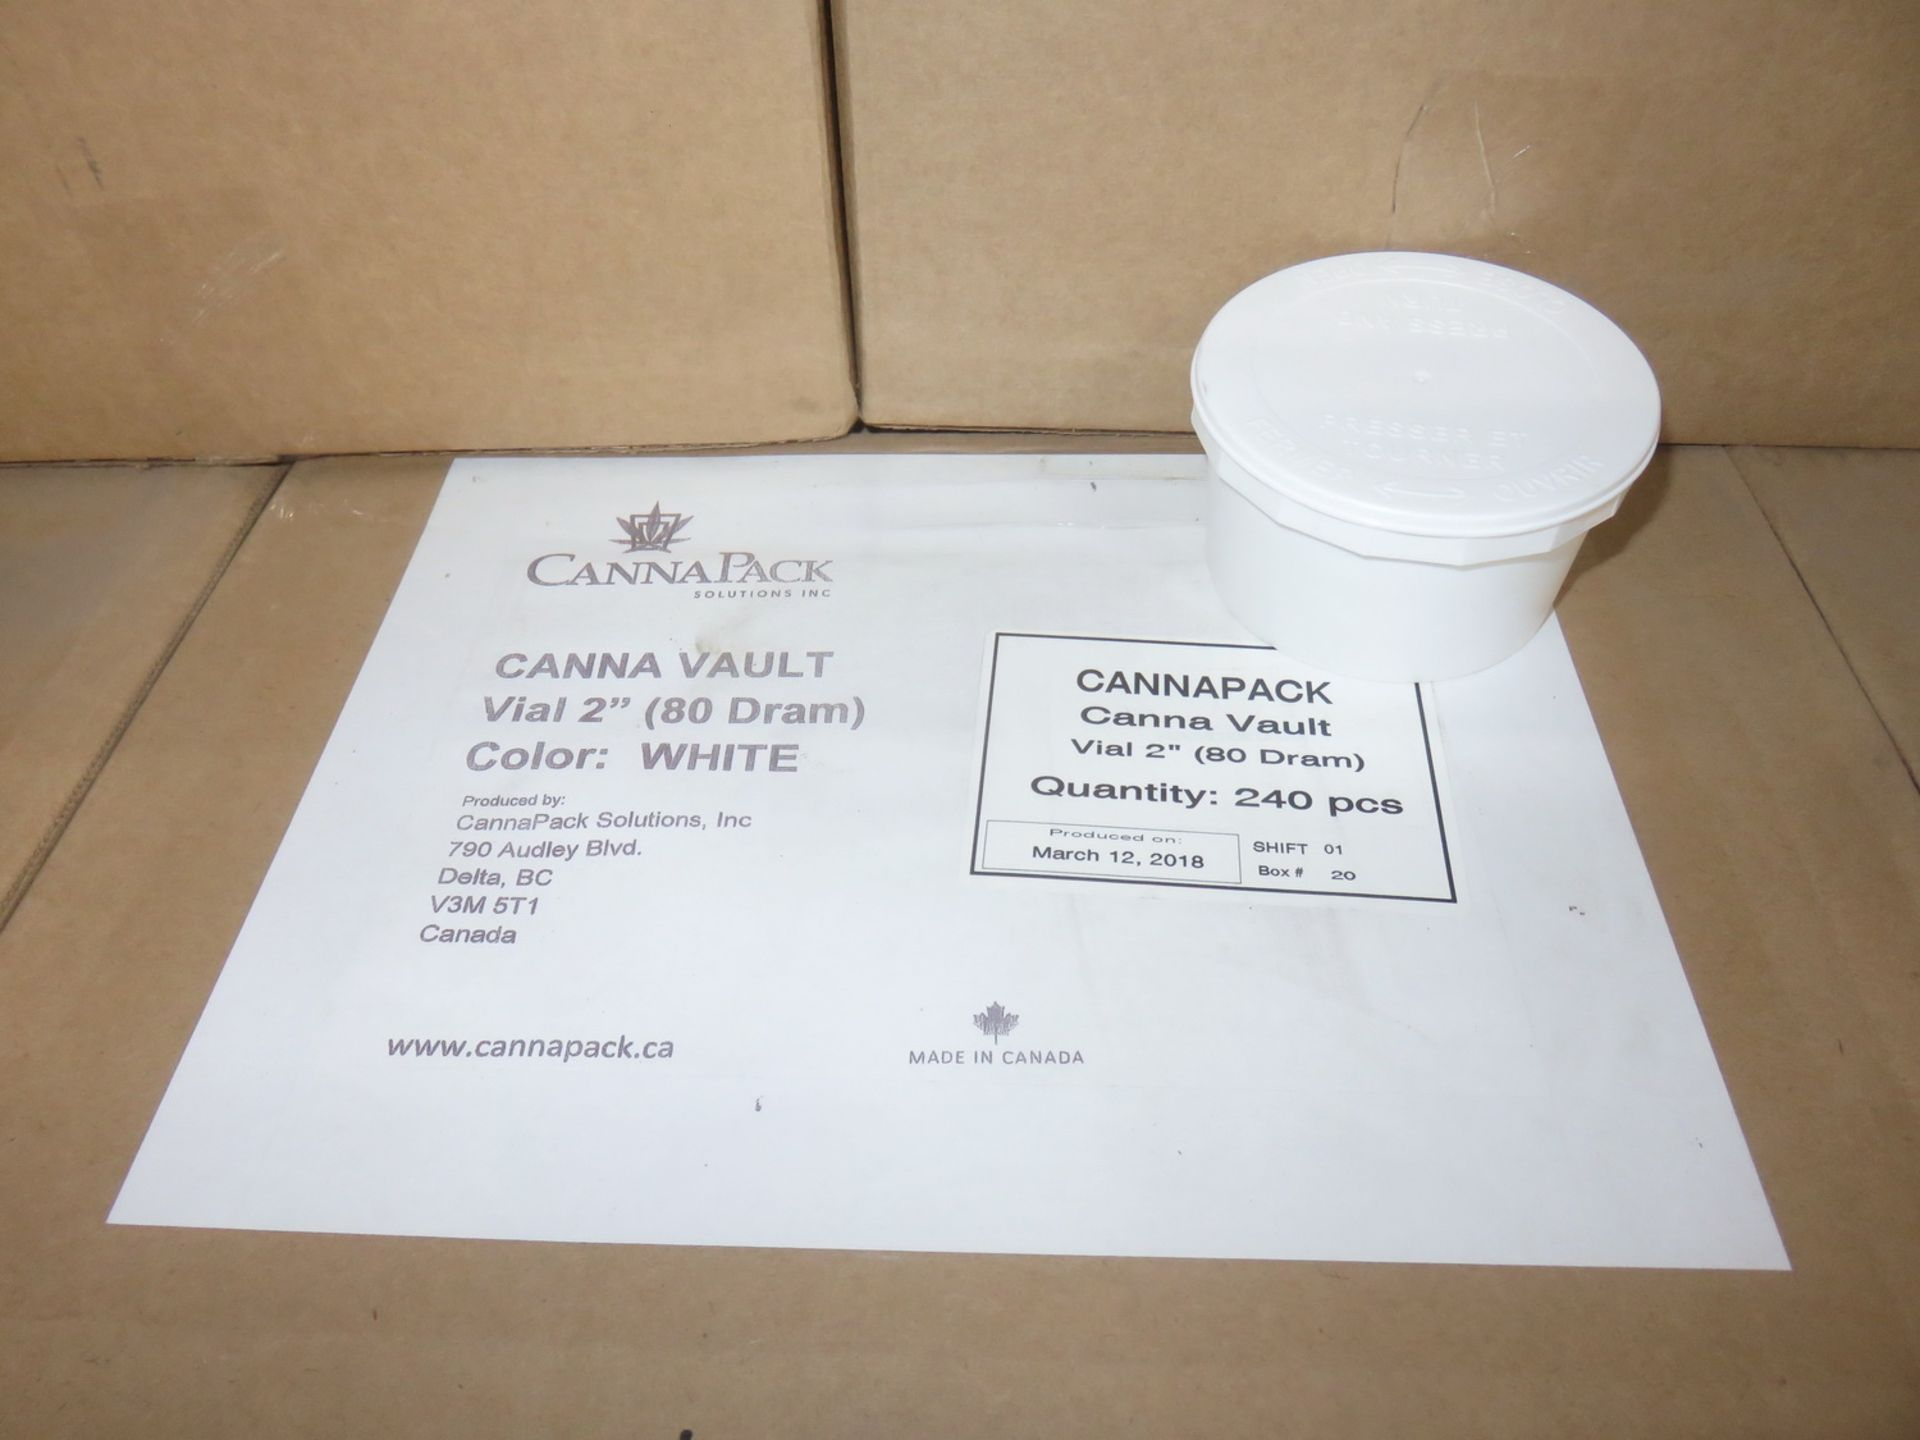 """Lot 10 - BOXES - CANNA PACK CANNA-VAULT VIAL 2"""" (80 DRAM) WHITE CANISTERS W/ LIDS (240 PCS/BOX)"""